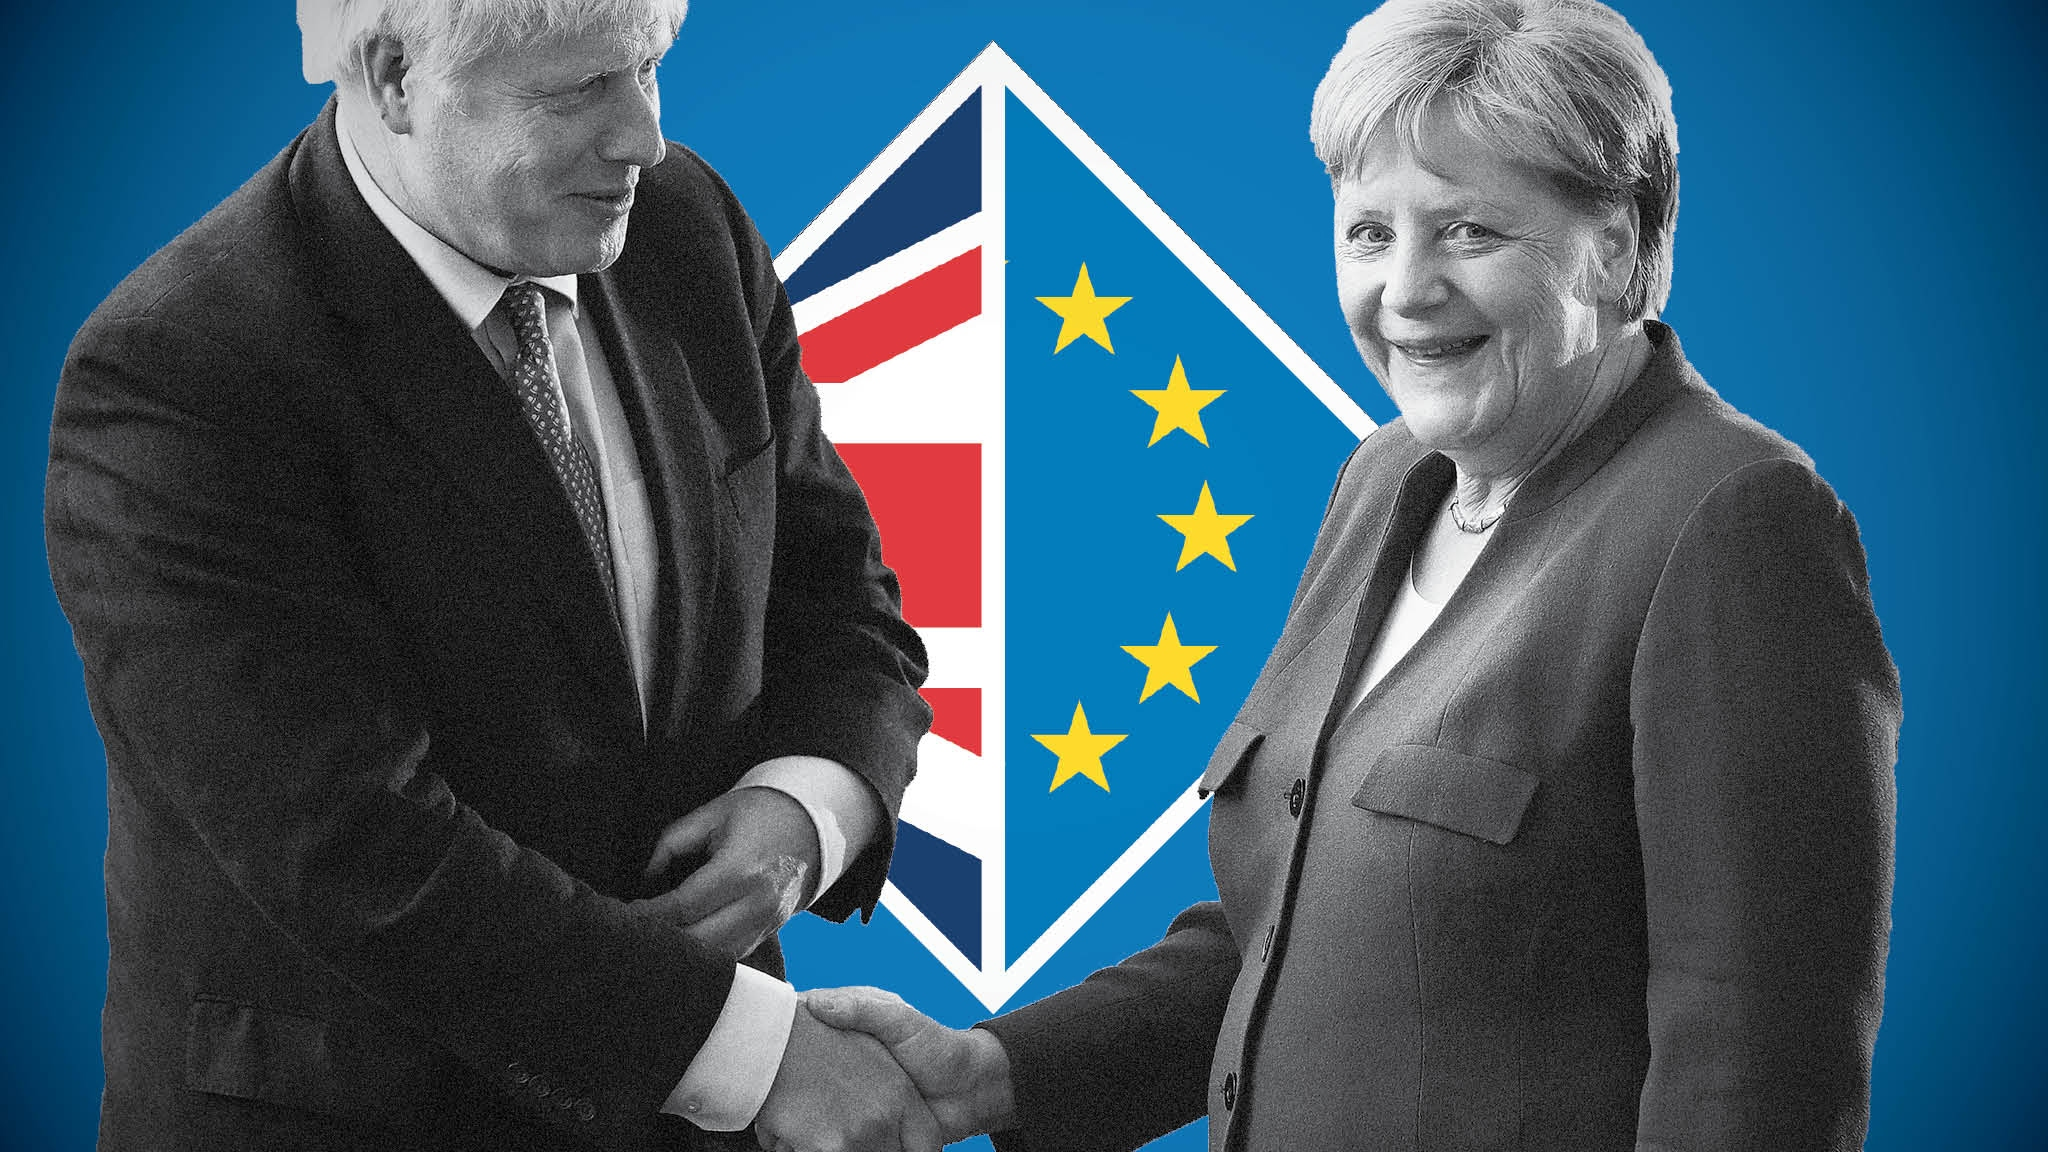 Did Angela Merkel really offer a big Brexit concession?